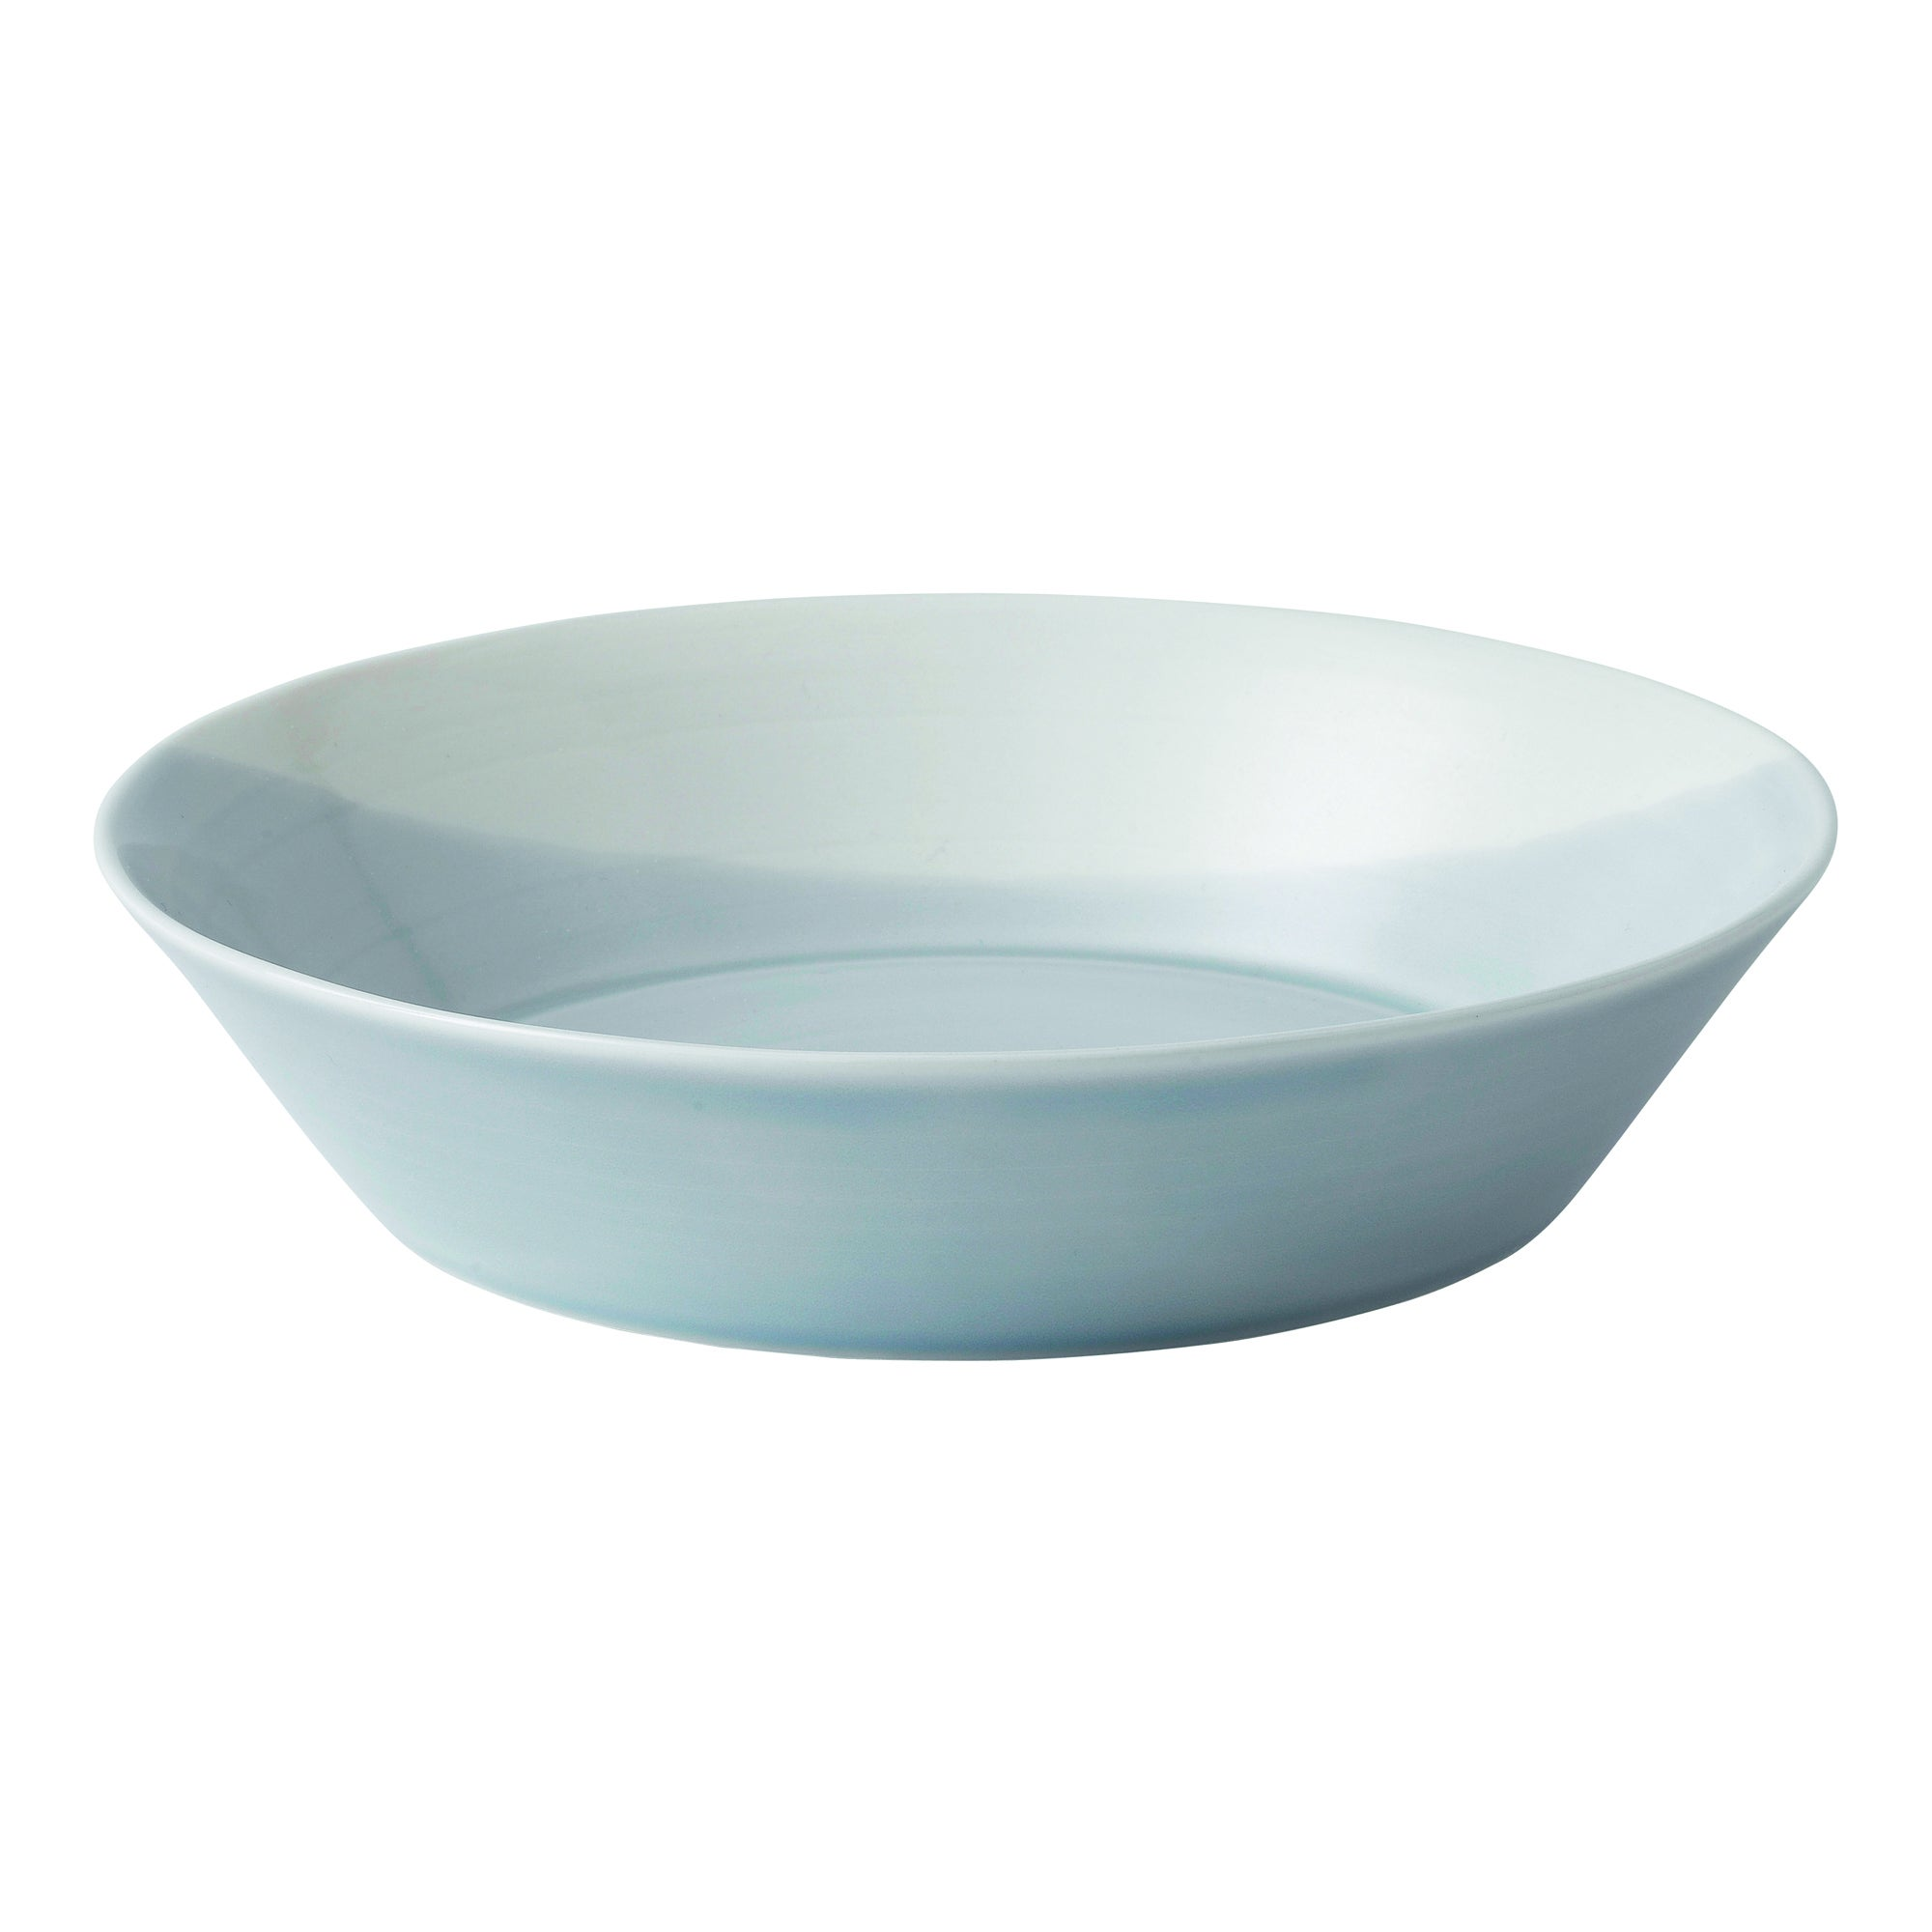 Royal Doulton Blue 1815 Collection Serving Bowl